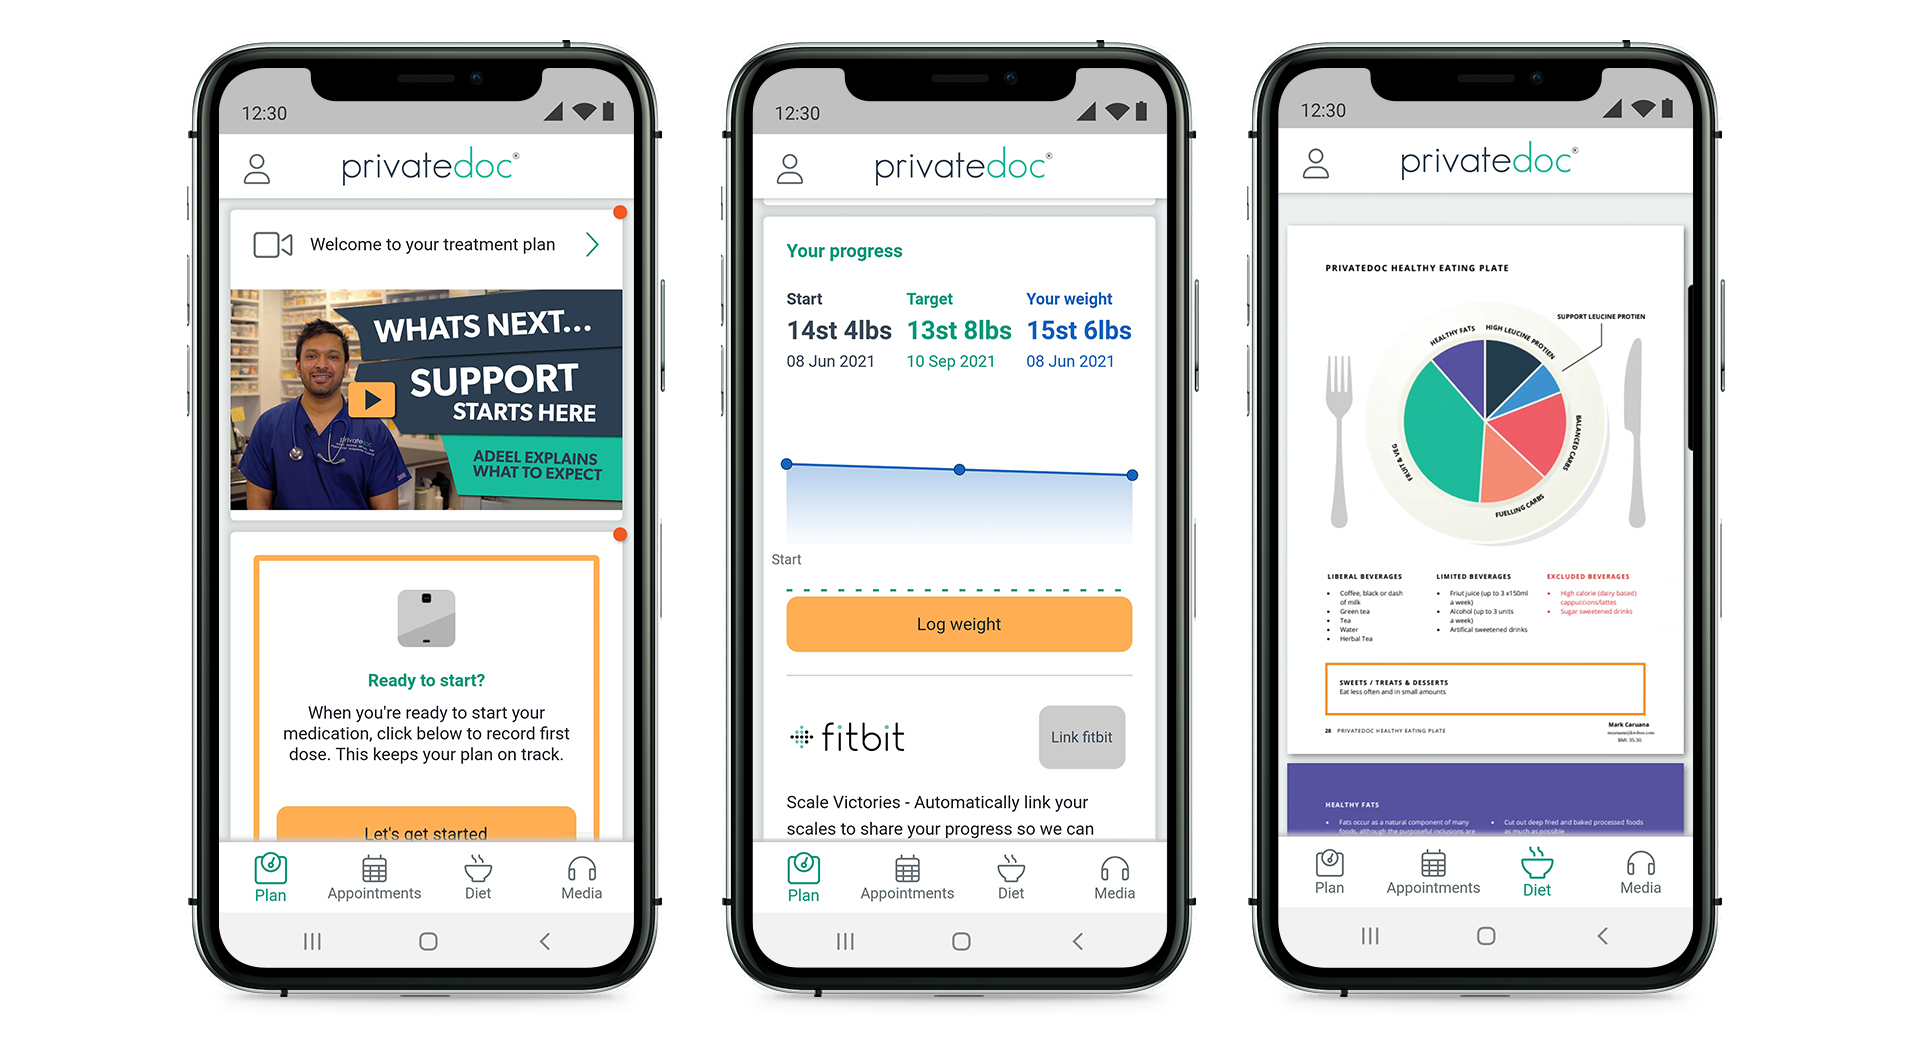 PrivateDoc Tackle Obesity With The Launch Of The First-Of-Its-Kind Weight Loss Treatment Tracking App